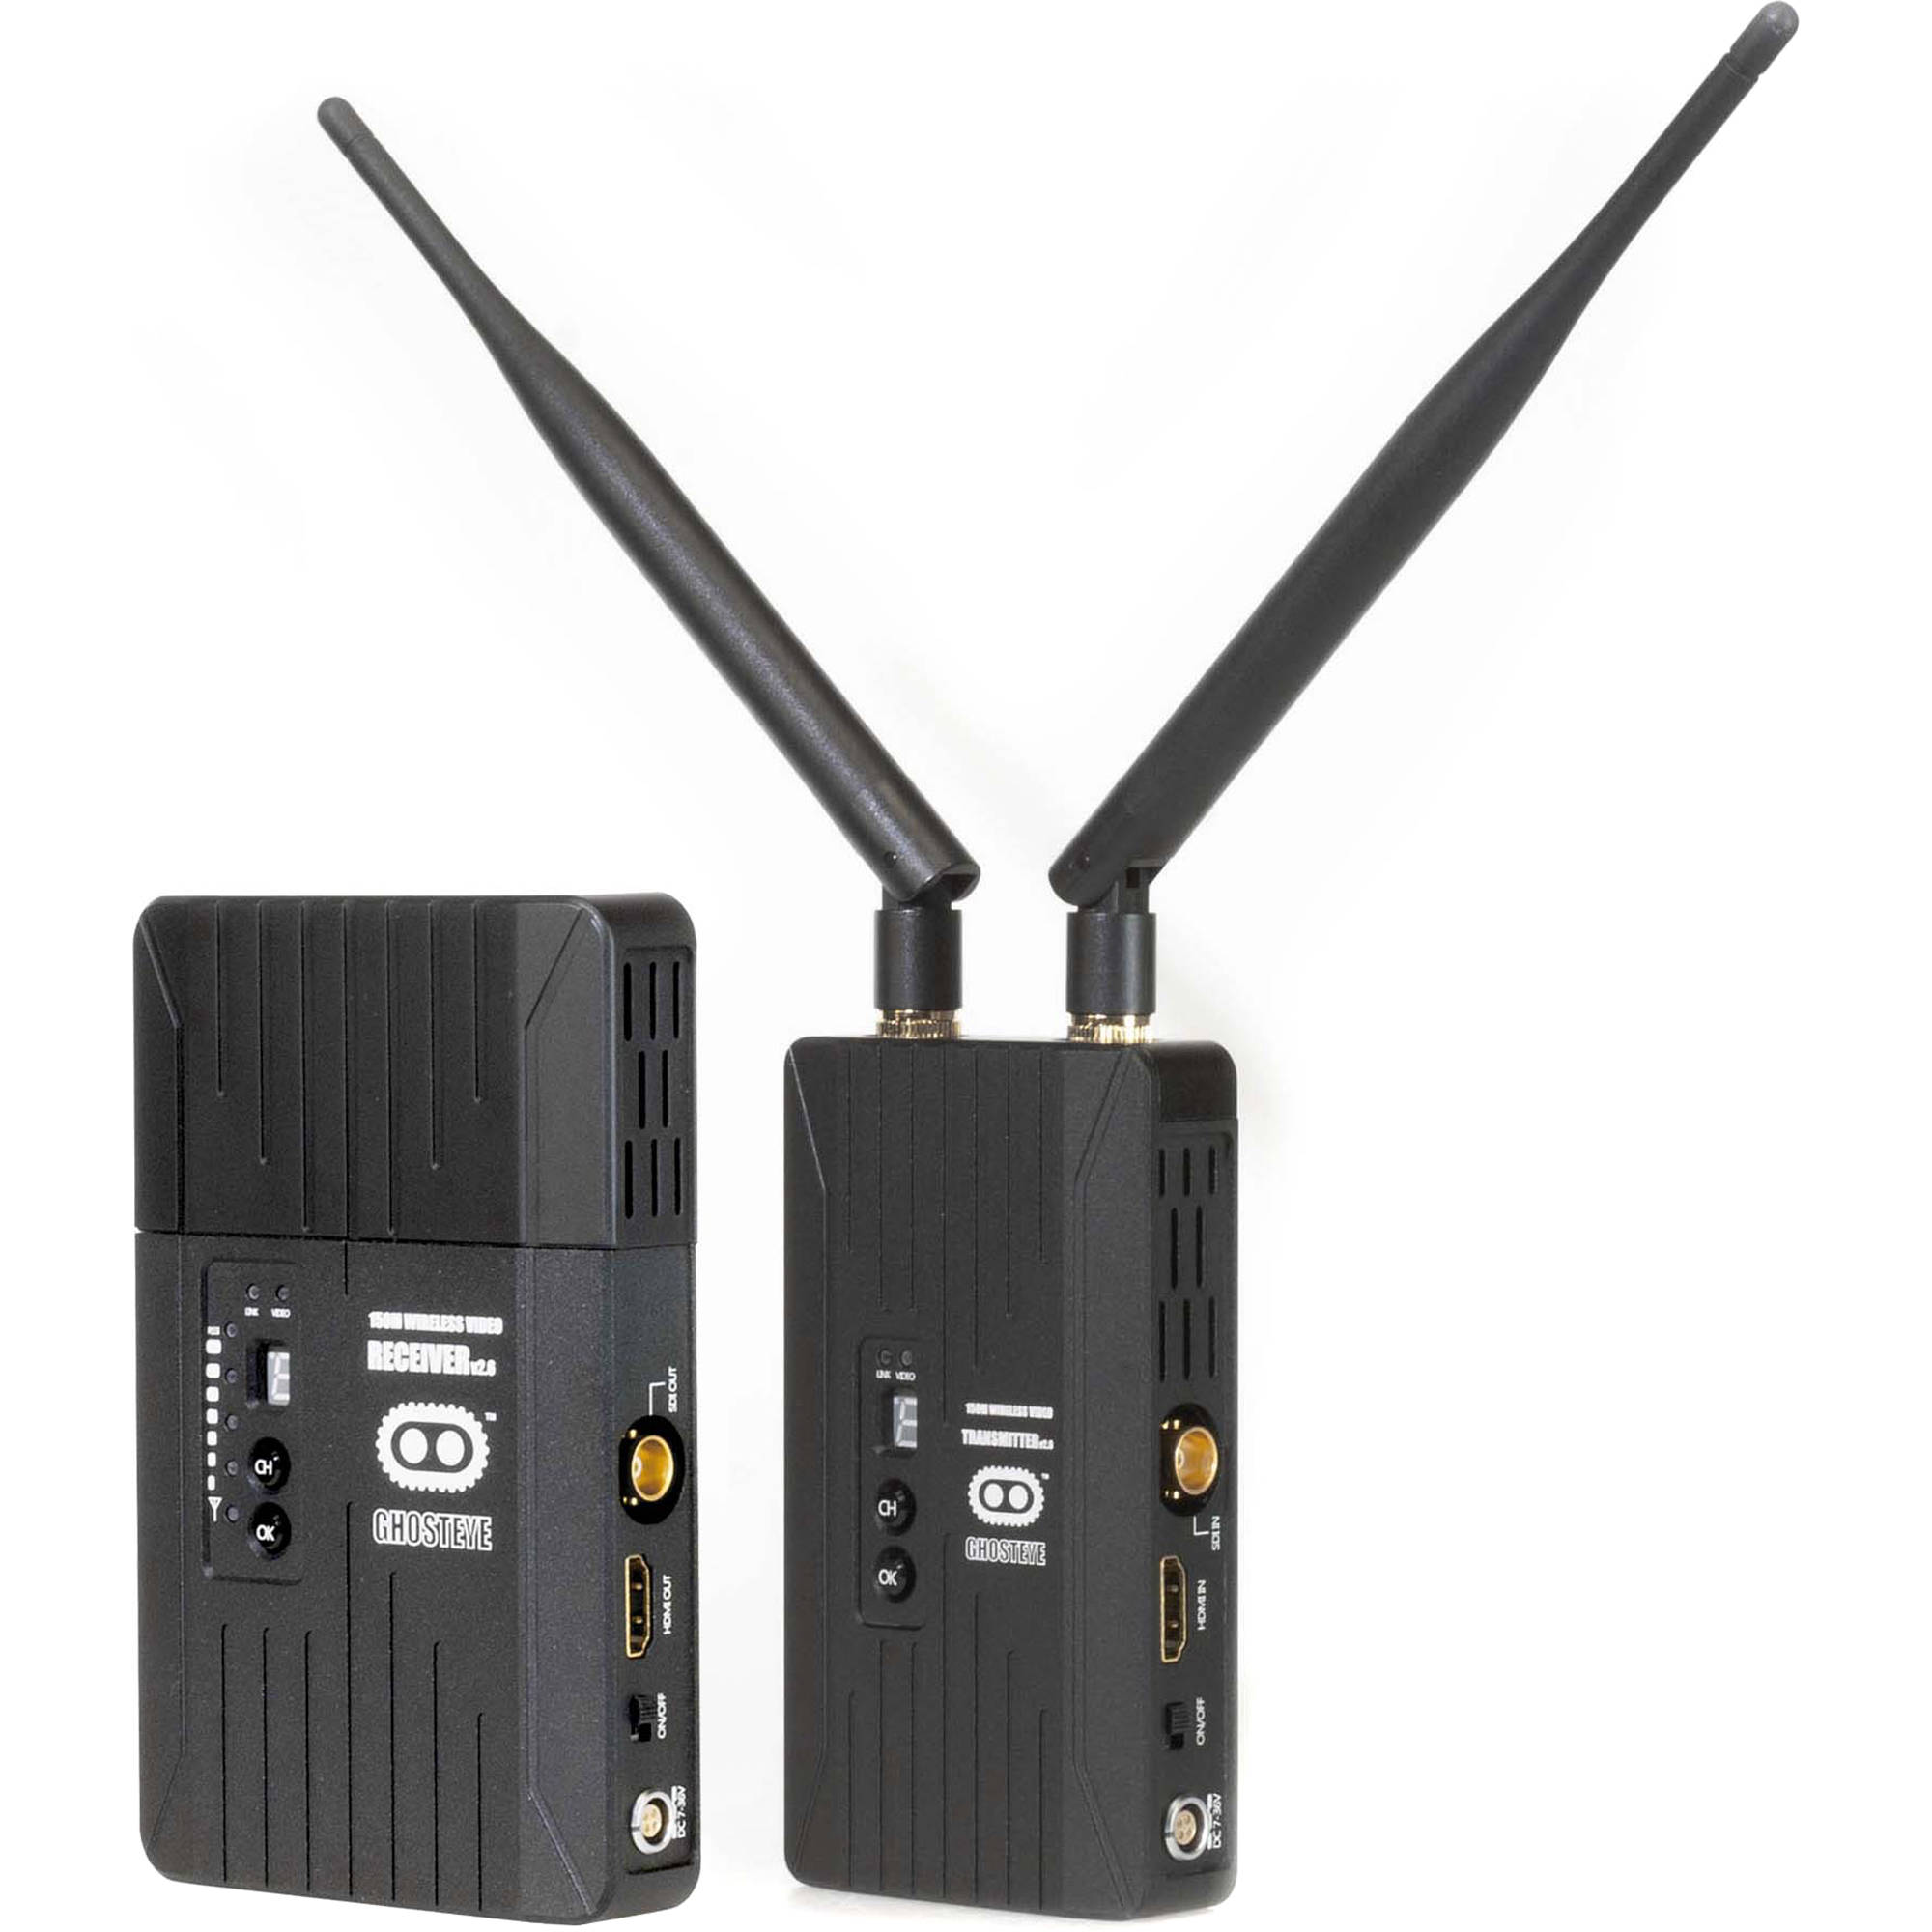 Cinegears Ghost Eye 150m V2 Wireless Hdmi 3g Sdi 6 151 Bh Photo And The Antenna Transmitter Two Points Are In One Line Transmission Kit 984